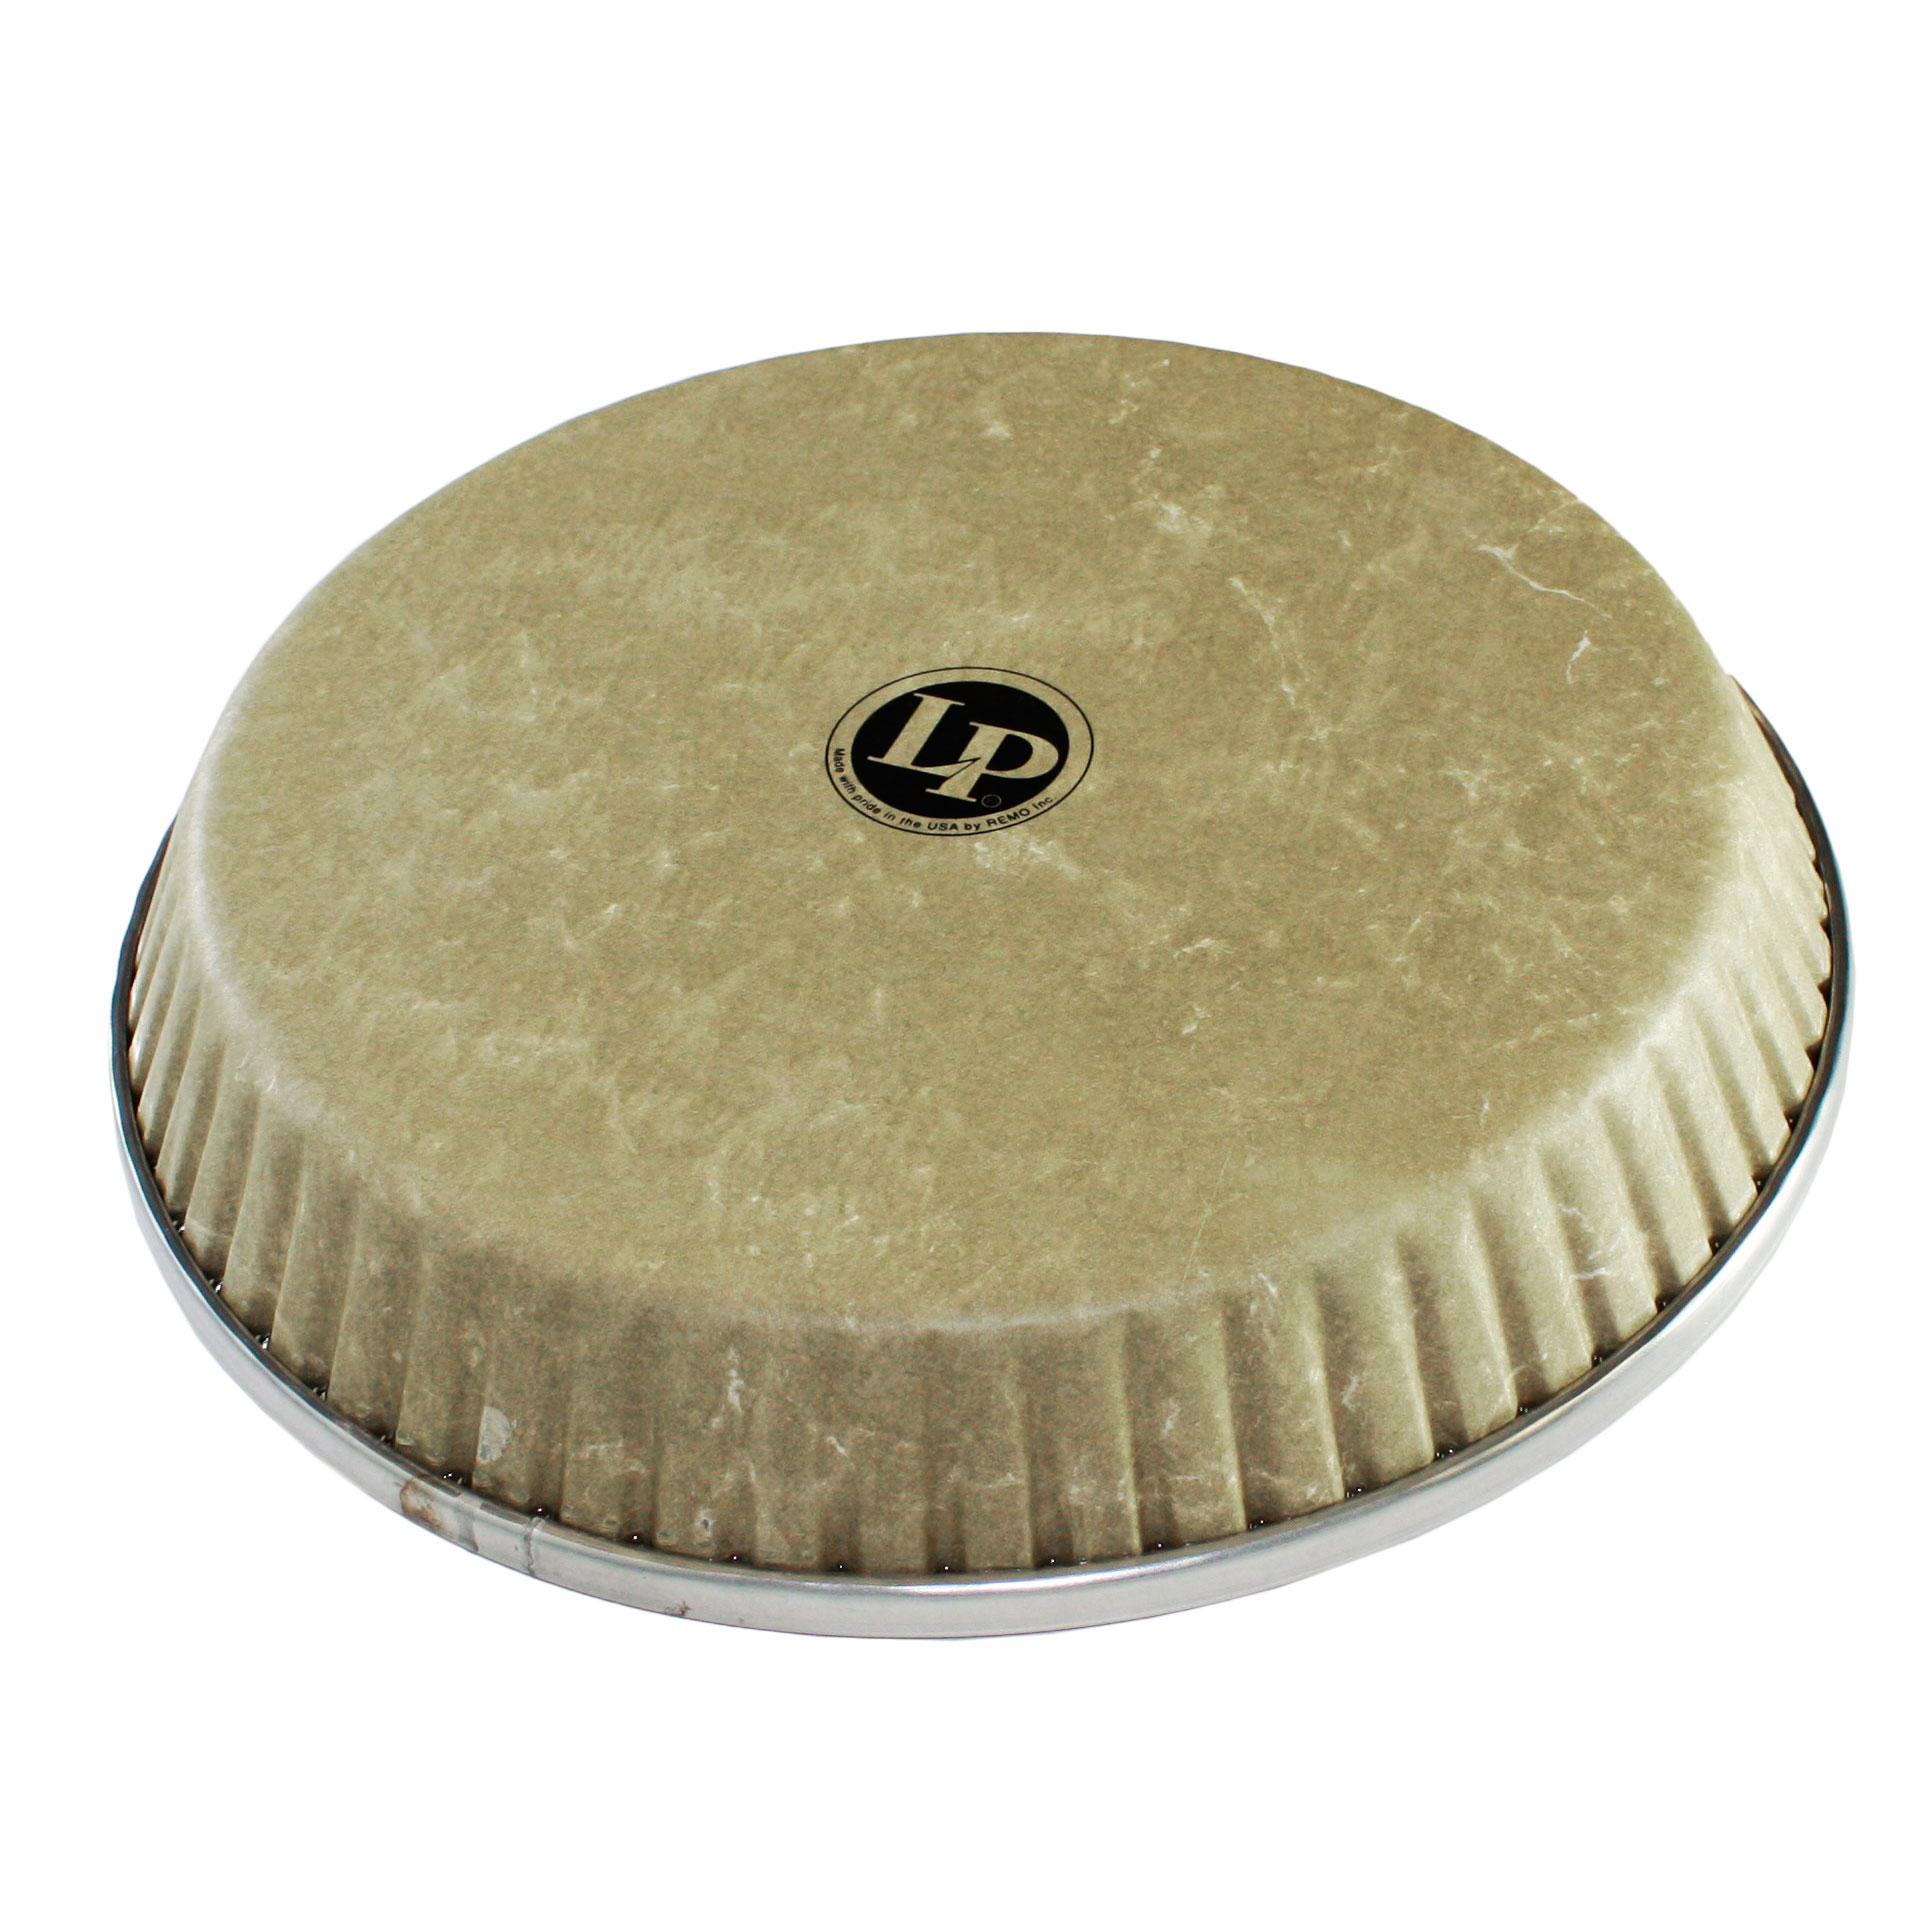 "LP 12.5"" Fiberskyn 3 Synthetic Conga Drum Head"